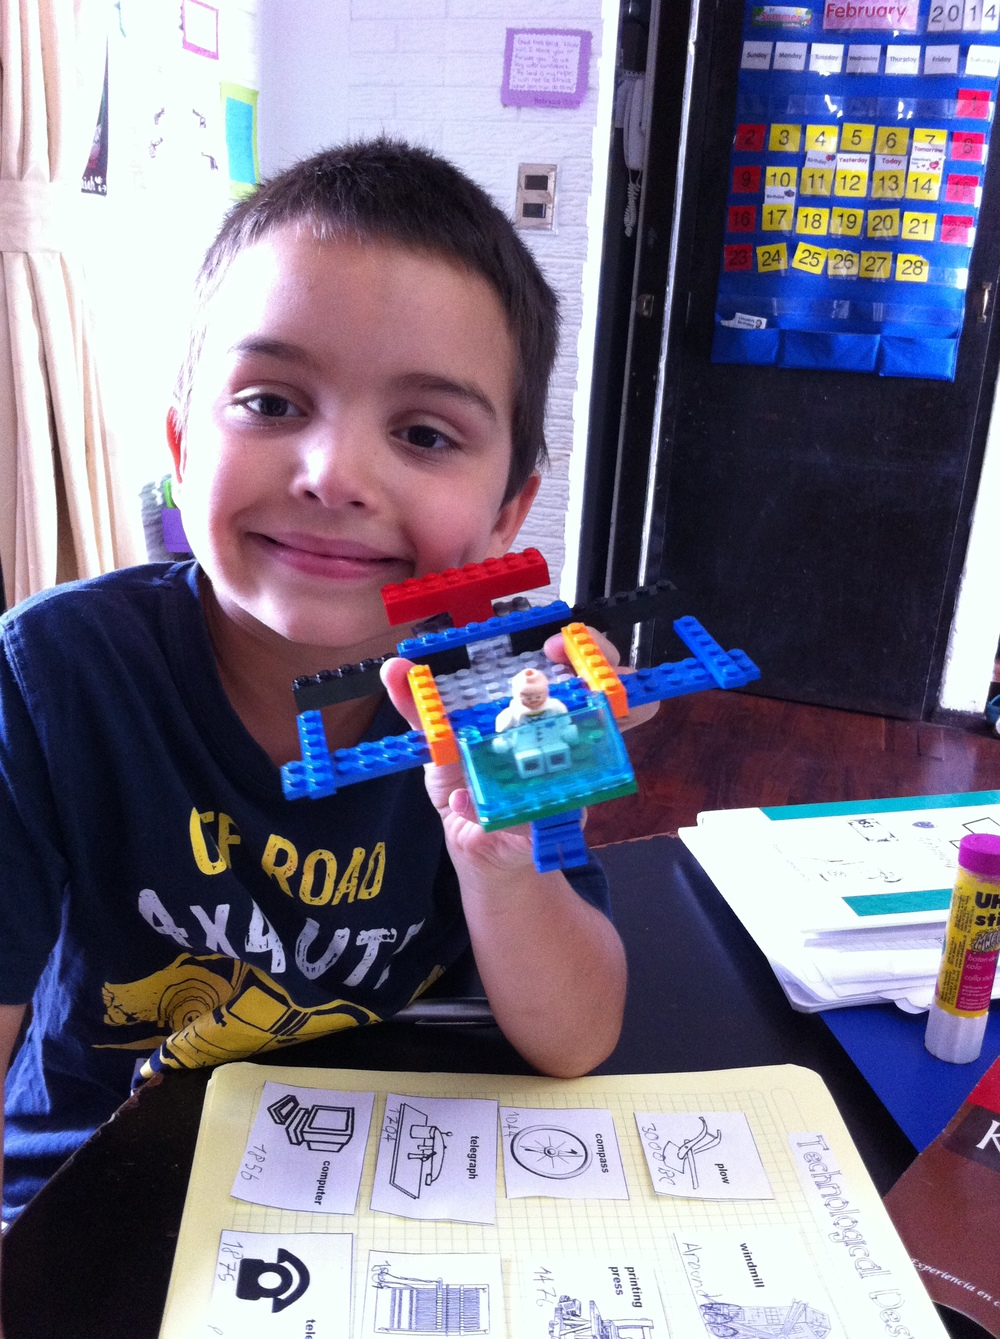 Daniel designing his own form of transport - a plane with legs.